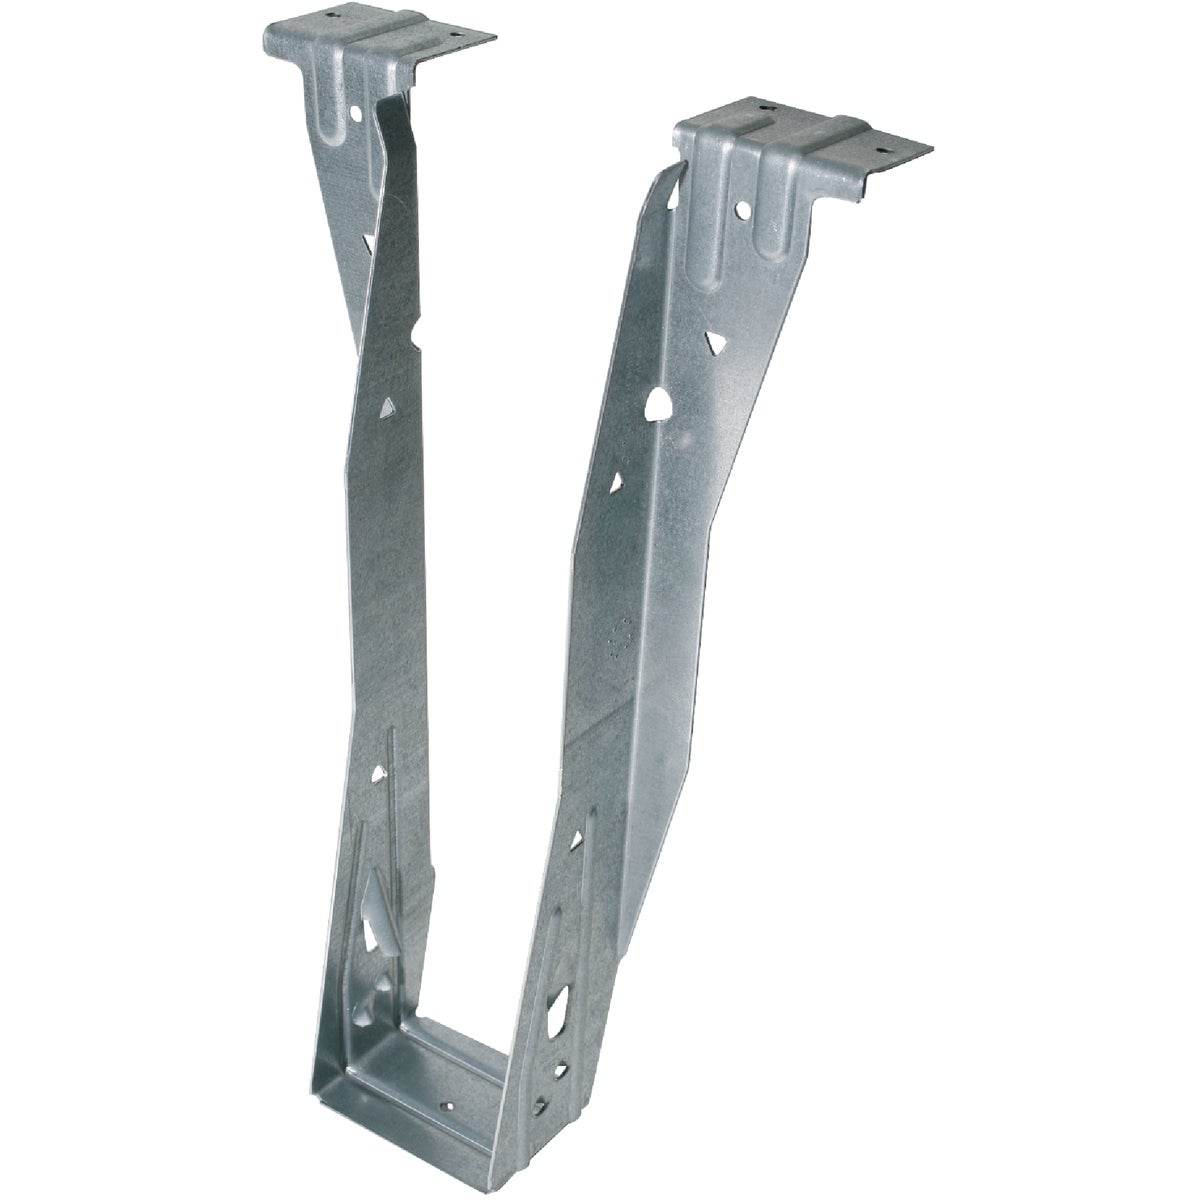 TOP FLANGE HANGER - ITS3.56/14 by Simpson Strong Tie